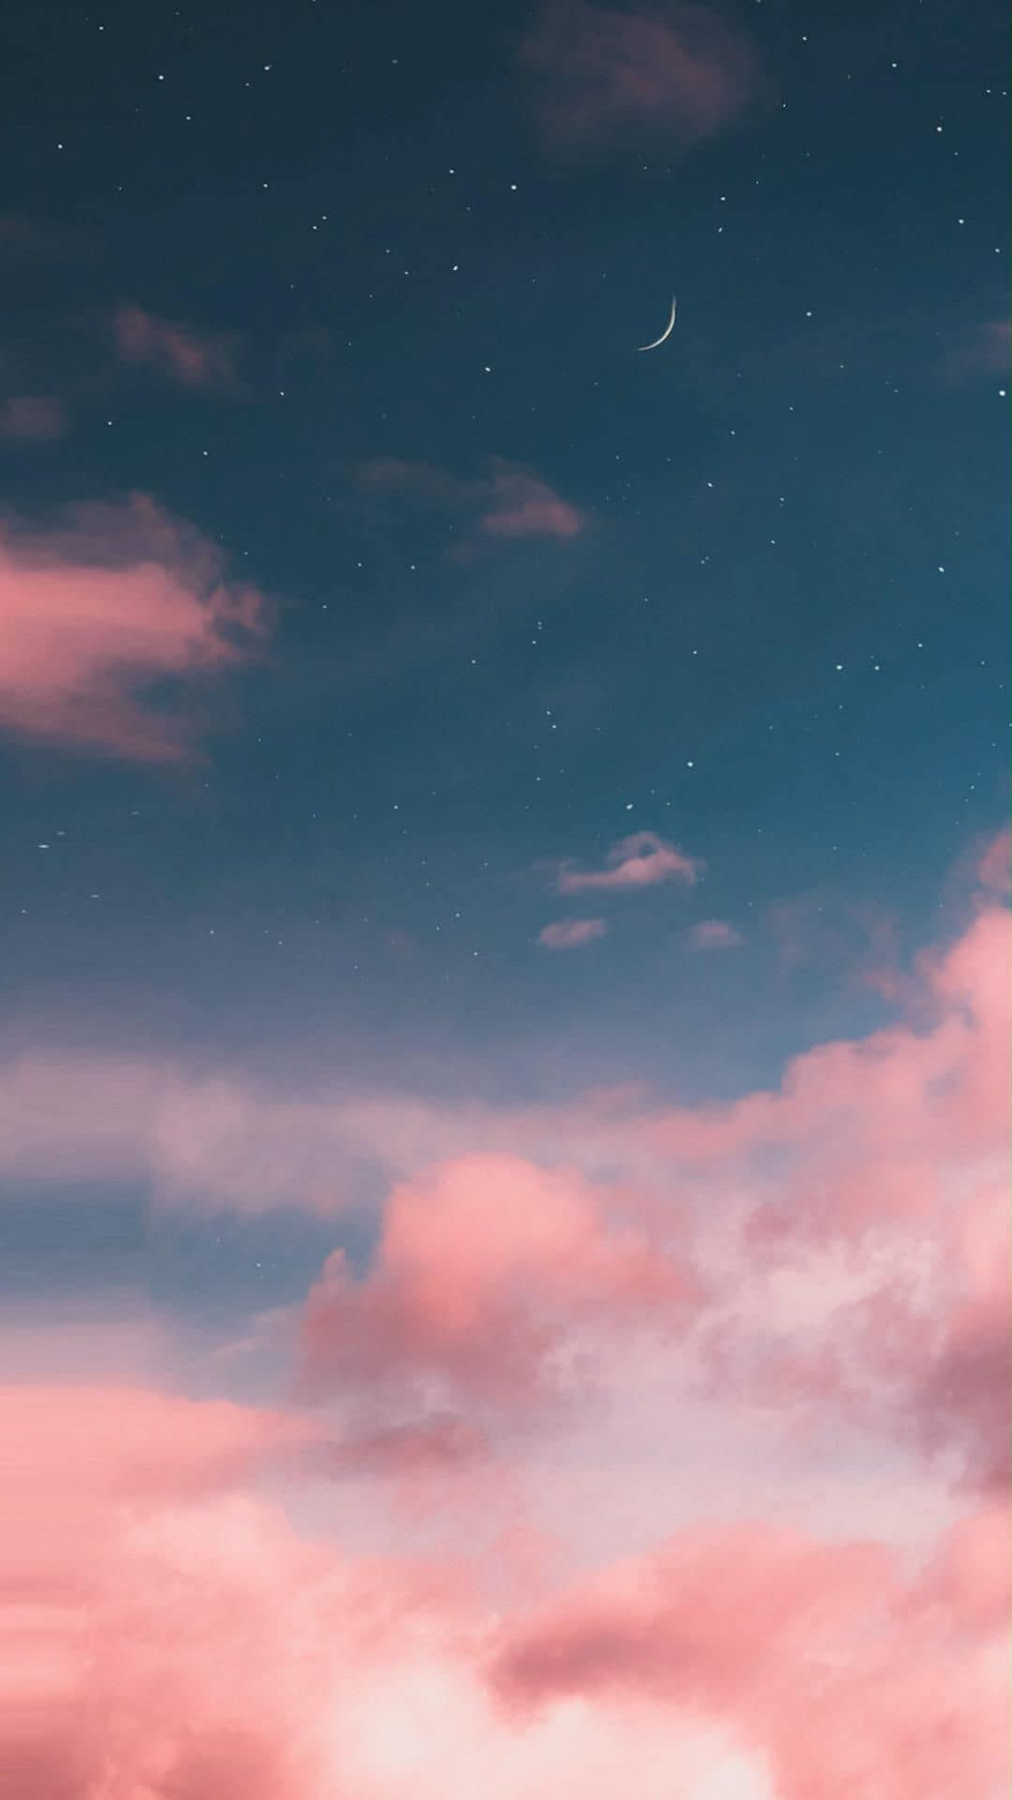 Nguyen Huu Son. Starry sky landscape with pink clouds